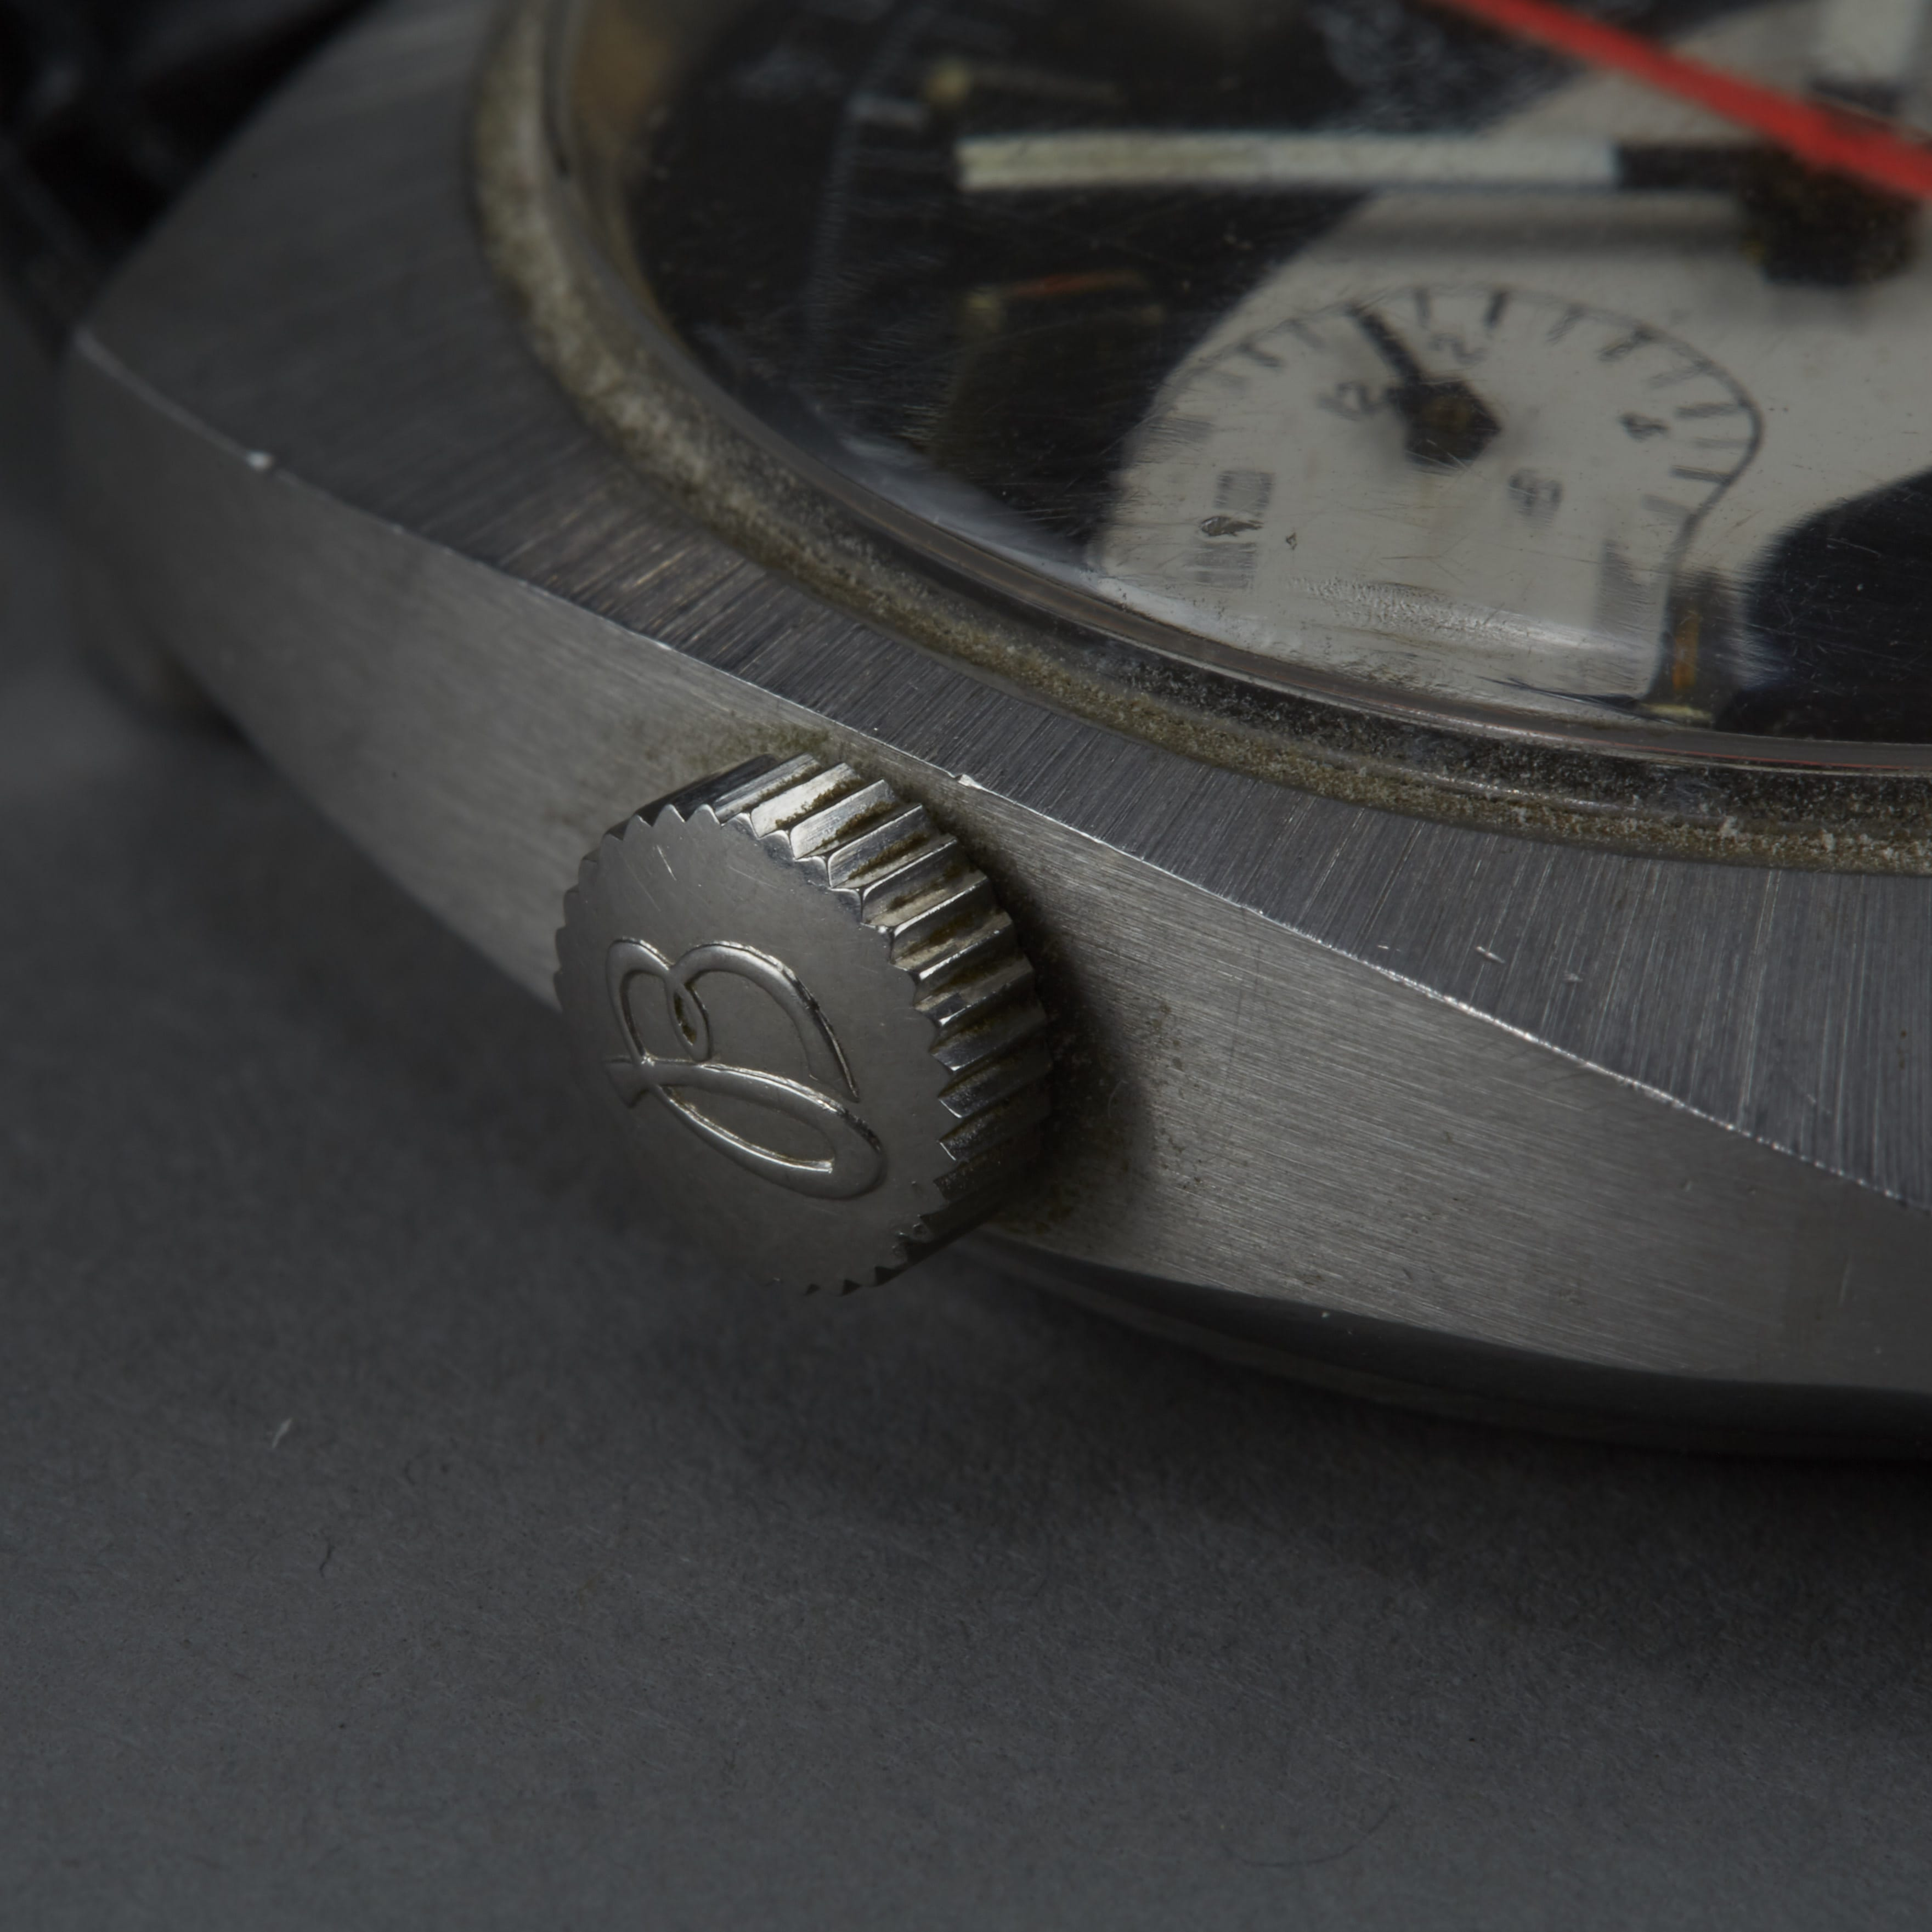 Lot 182: Breitling Chrono-Matic 2111 Watch